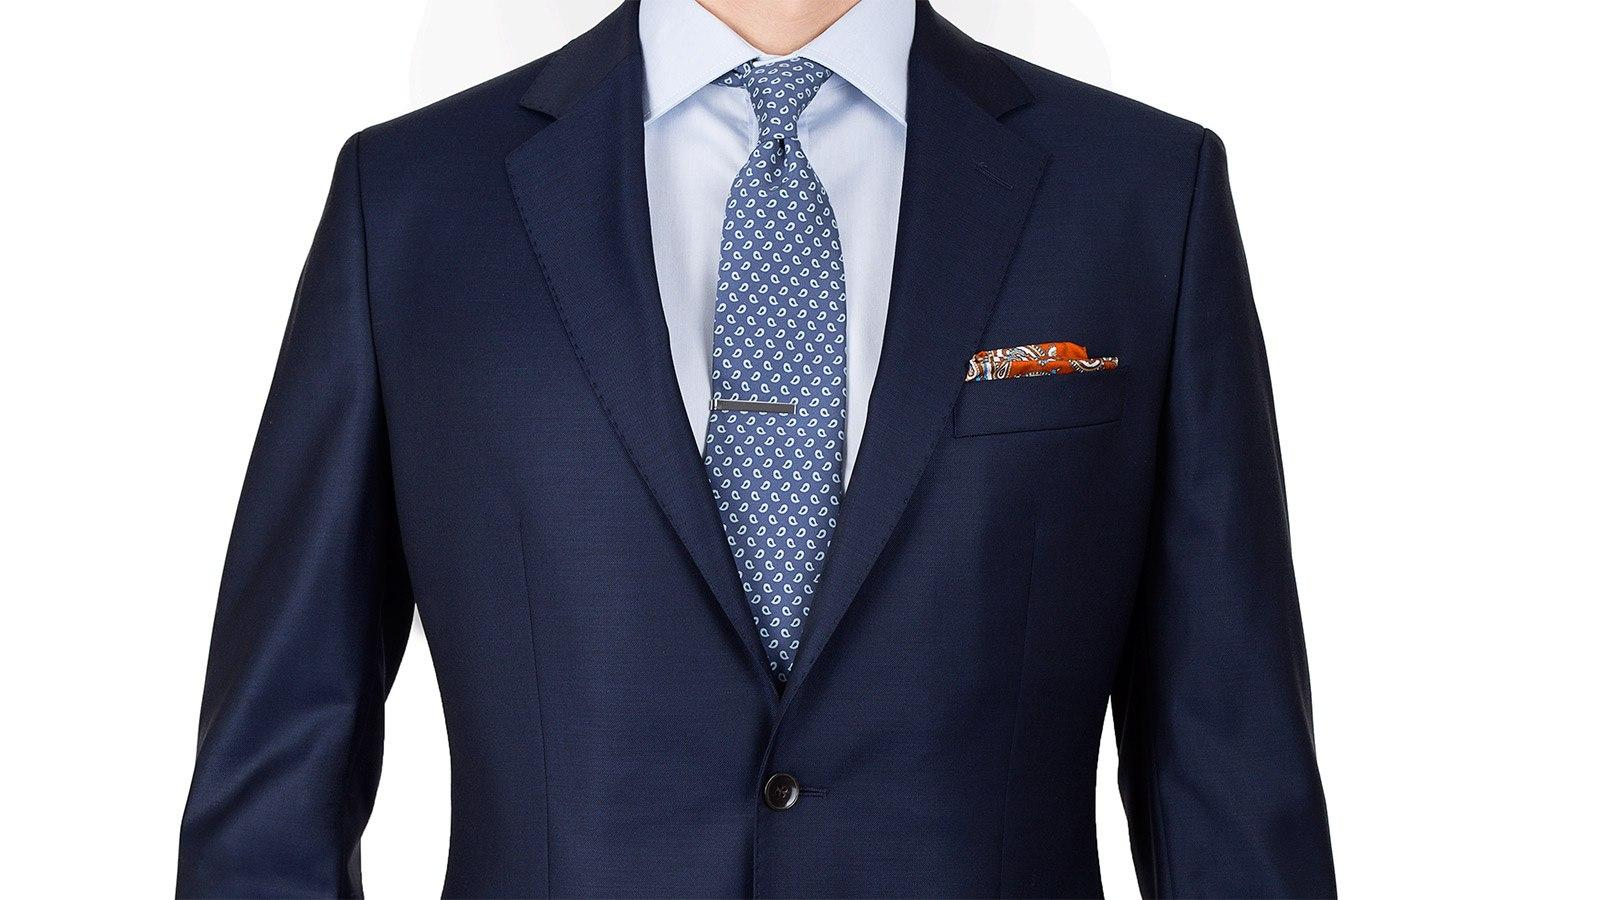 Suit in Solid Deep Blue Wool - slider image 1